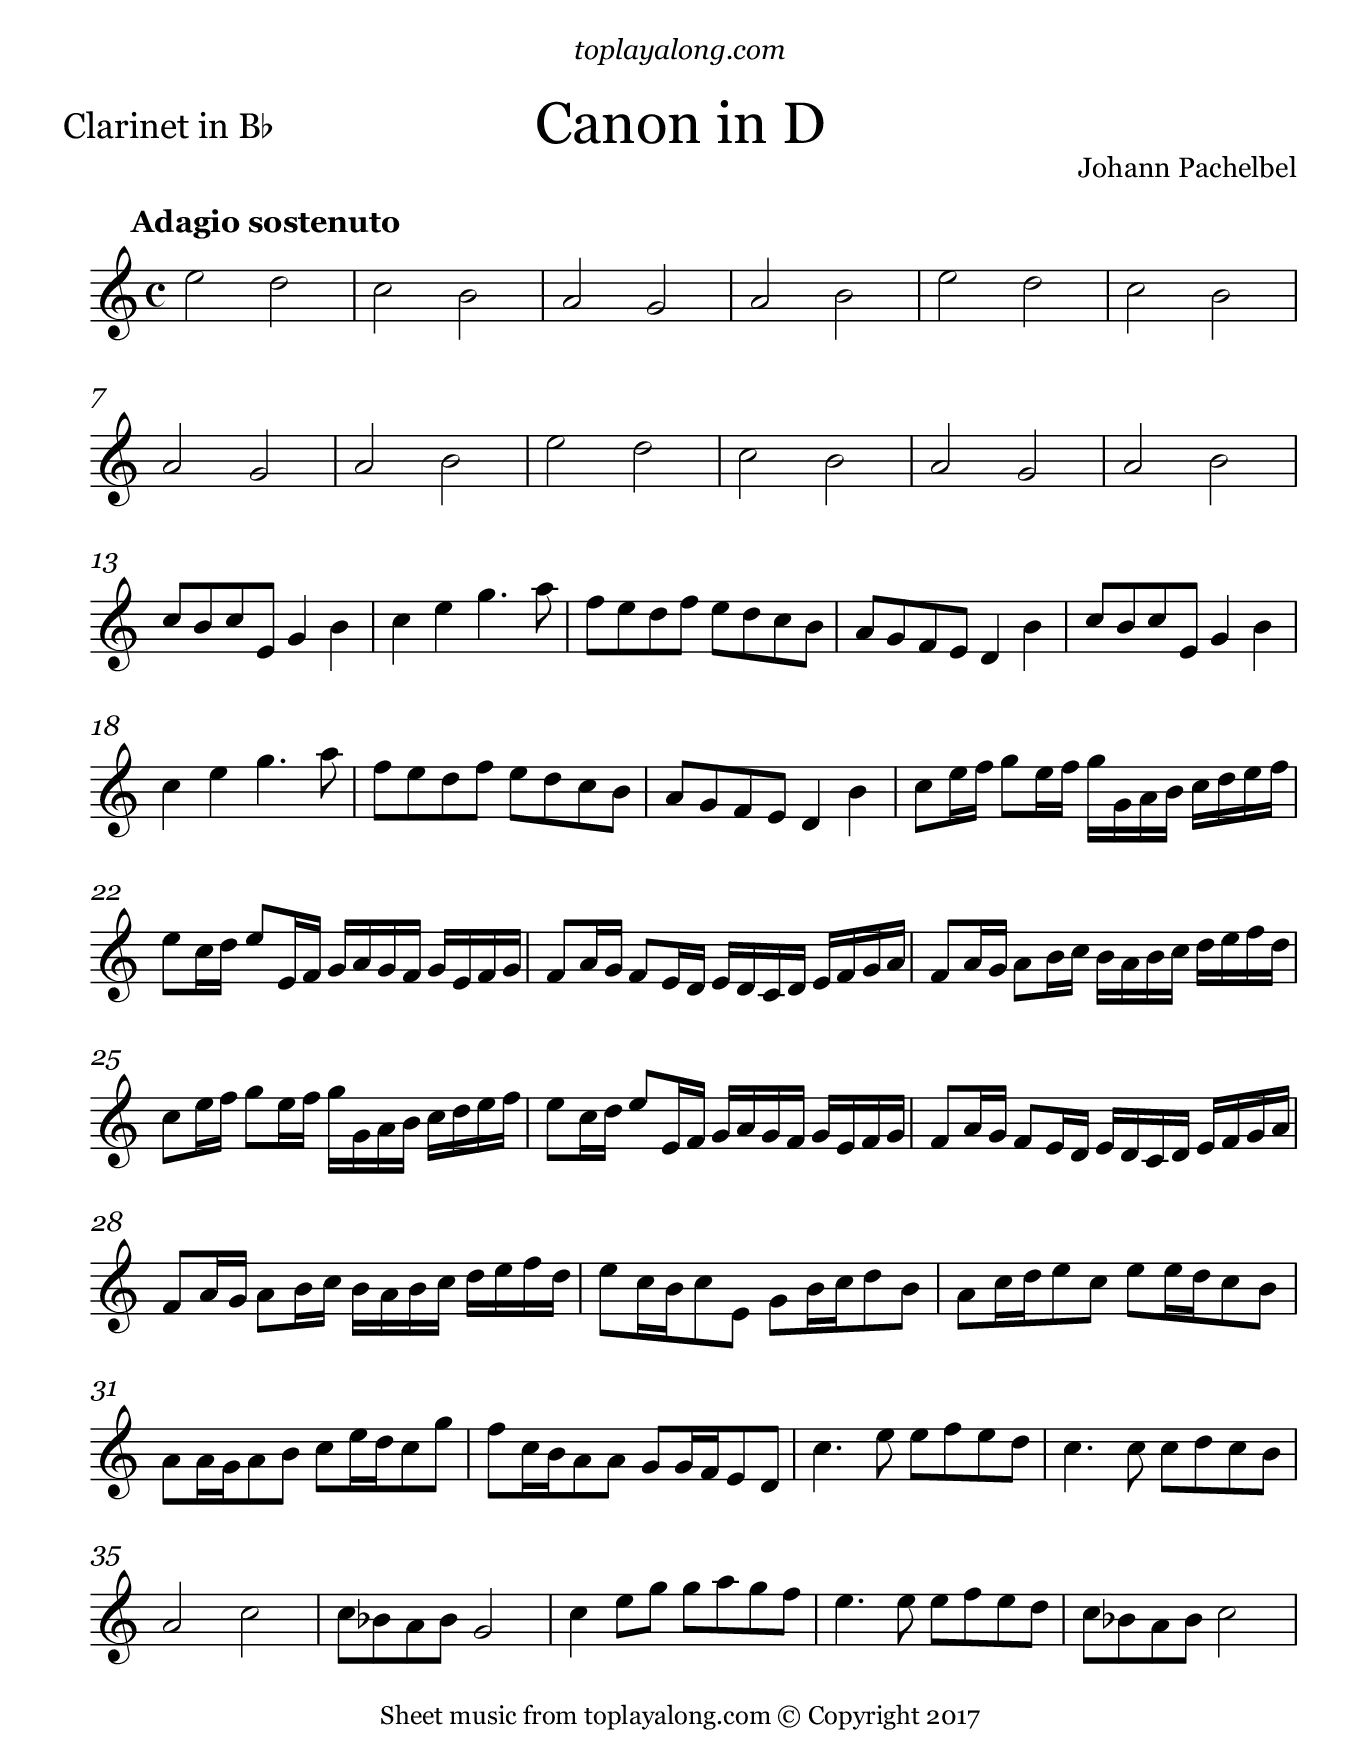 Canon in D by Pachelbel. Sheet music for Clarinet, page 1.